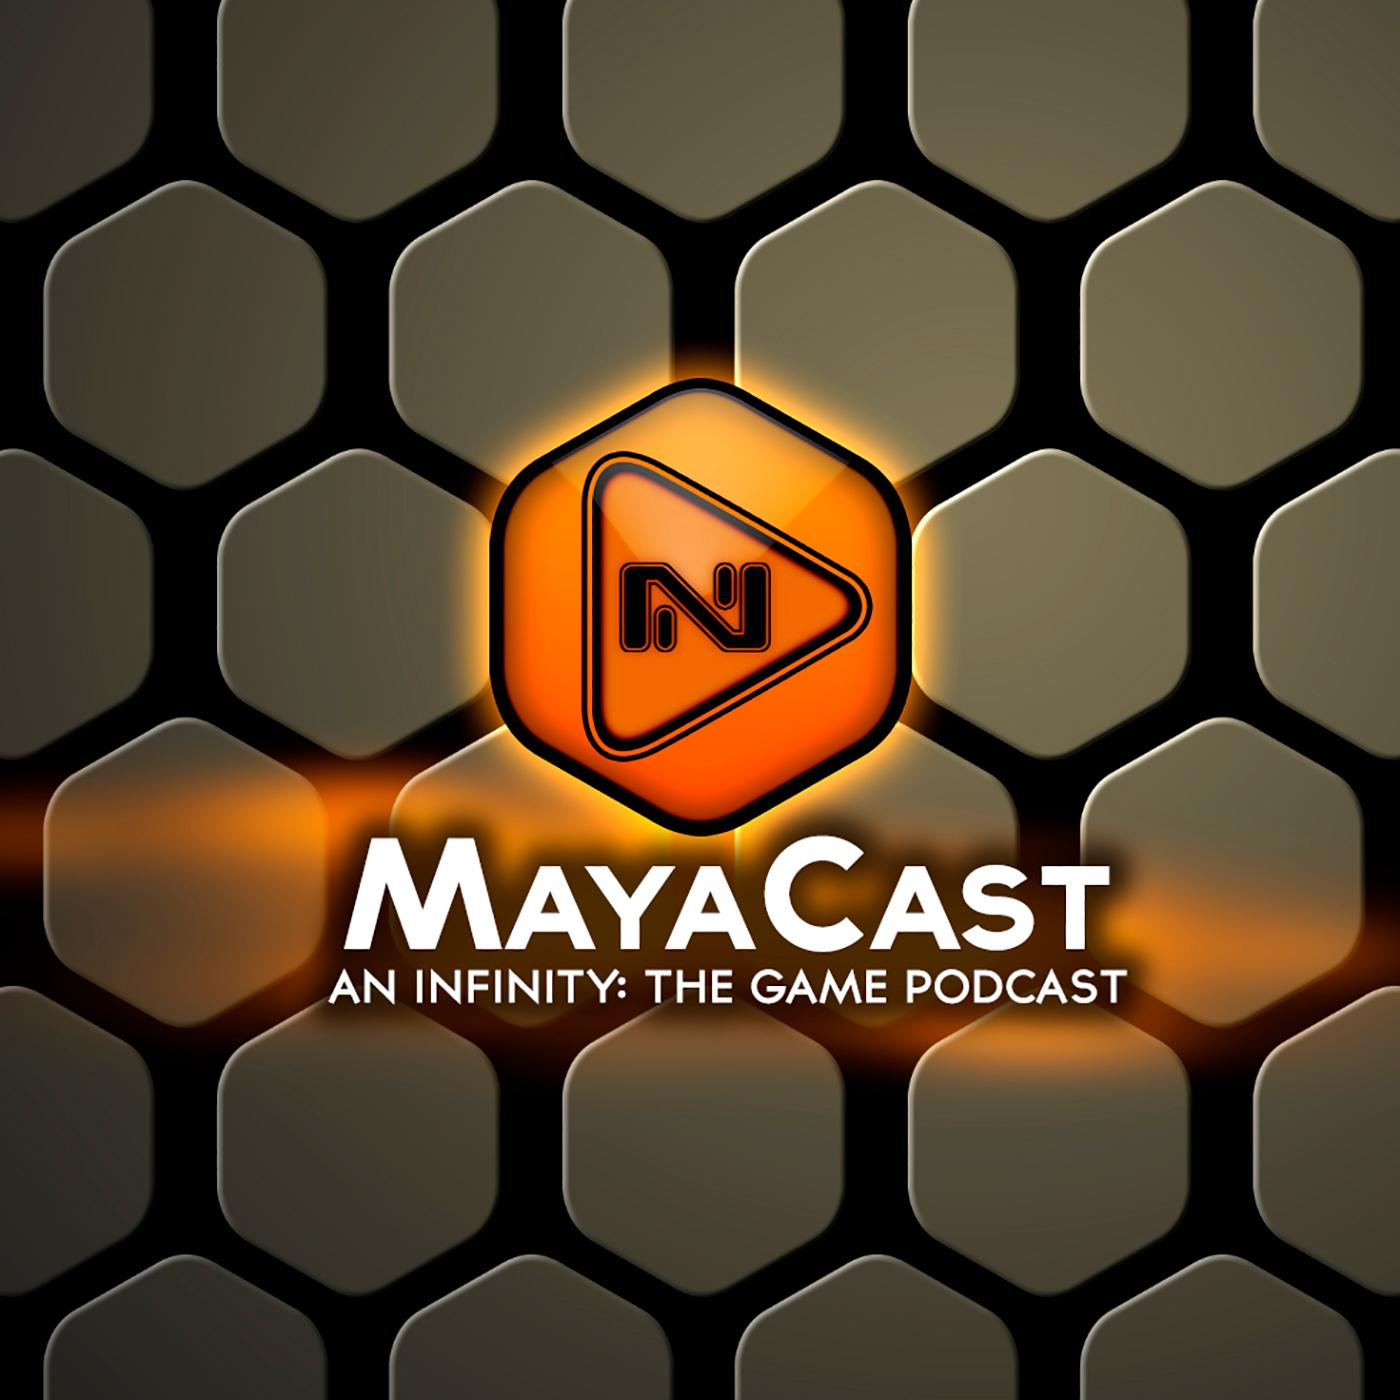 MayaCast Episode 85: Sectorial Fireteam Options - Part 3